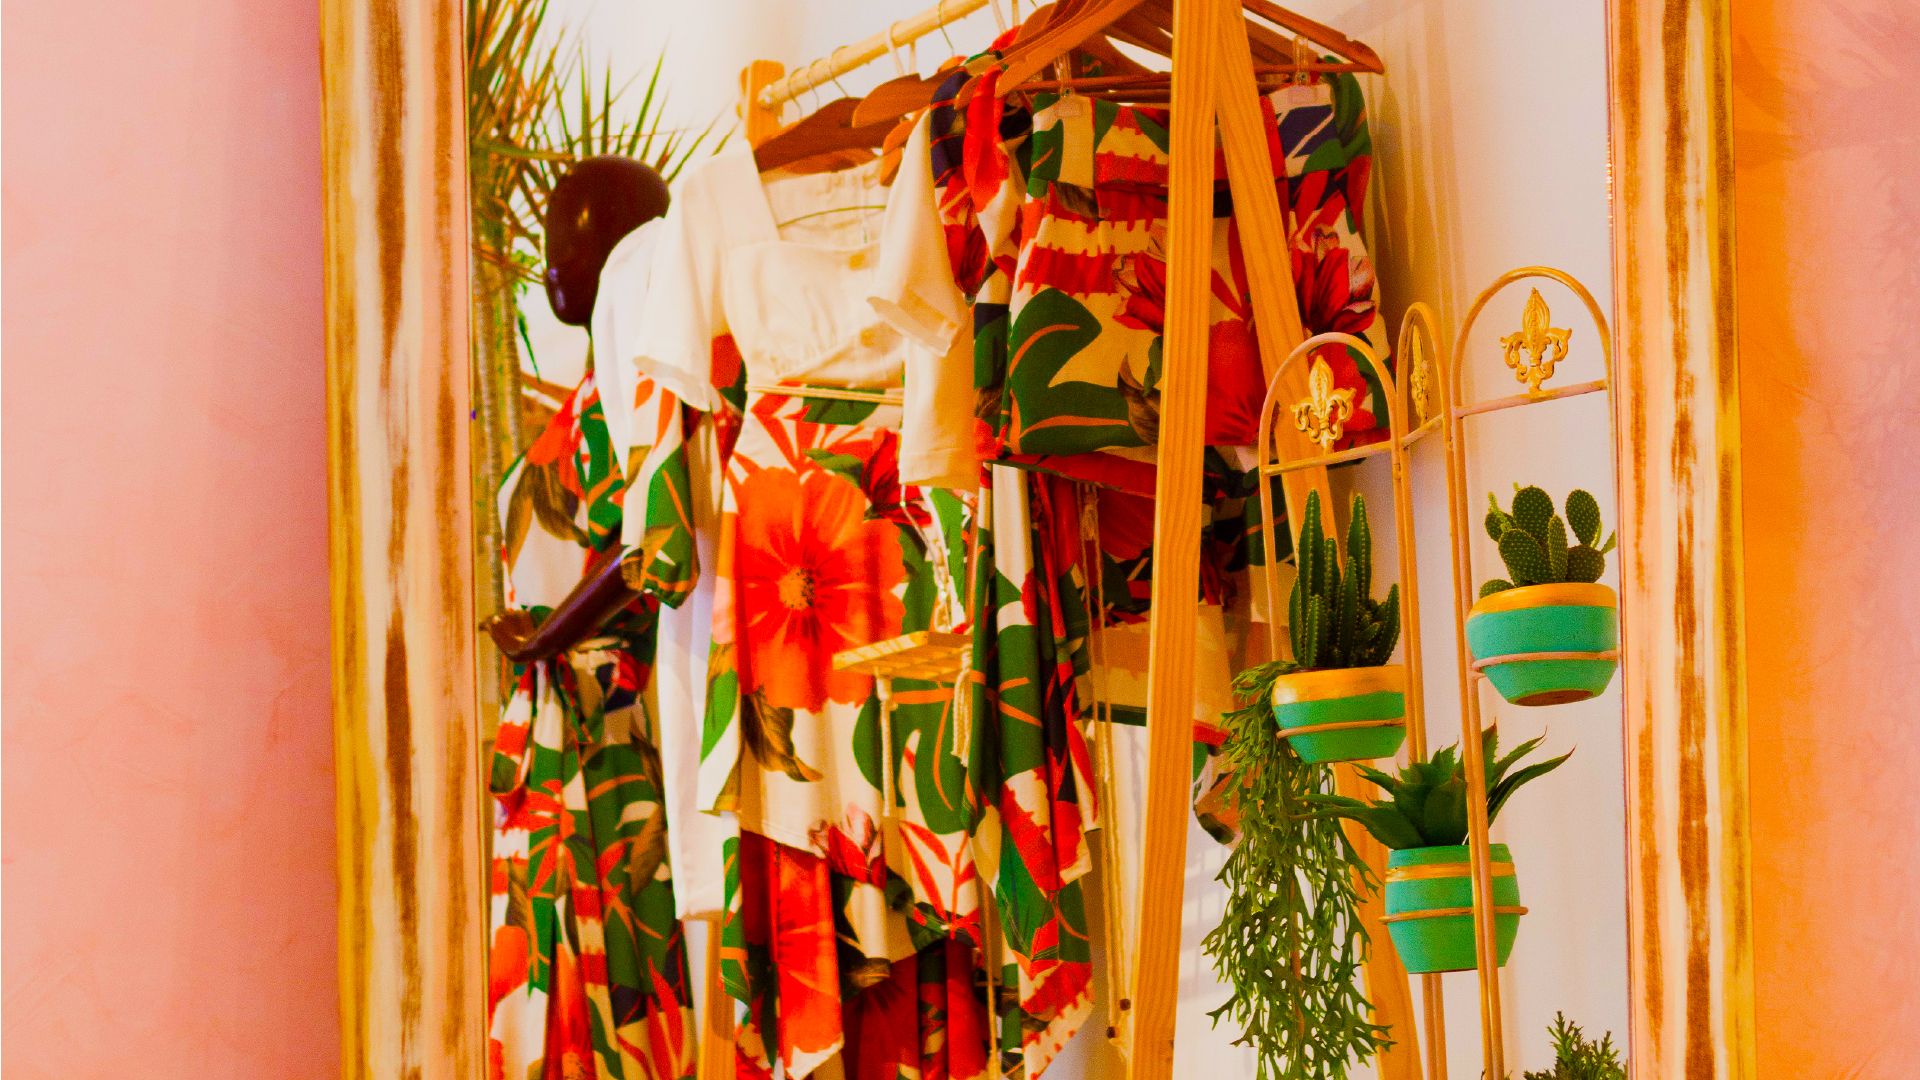 Rack of vibrant clothing with potted plants